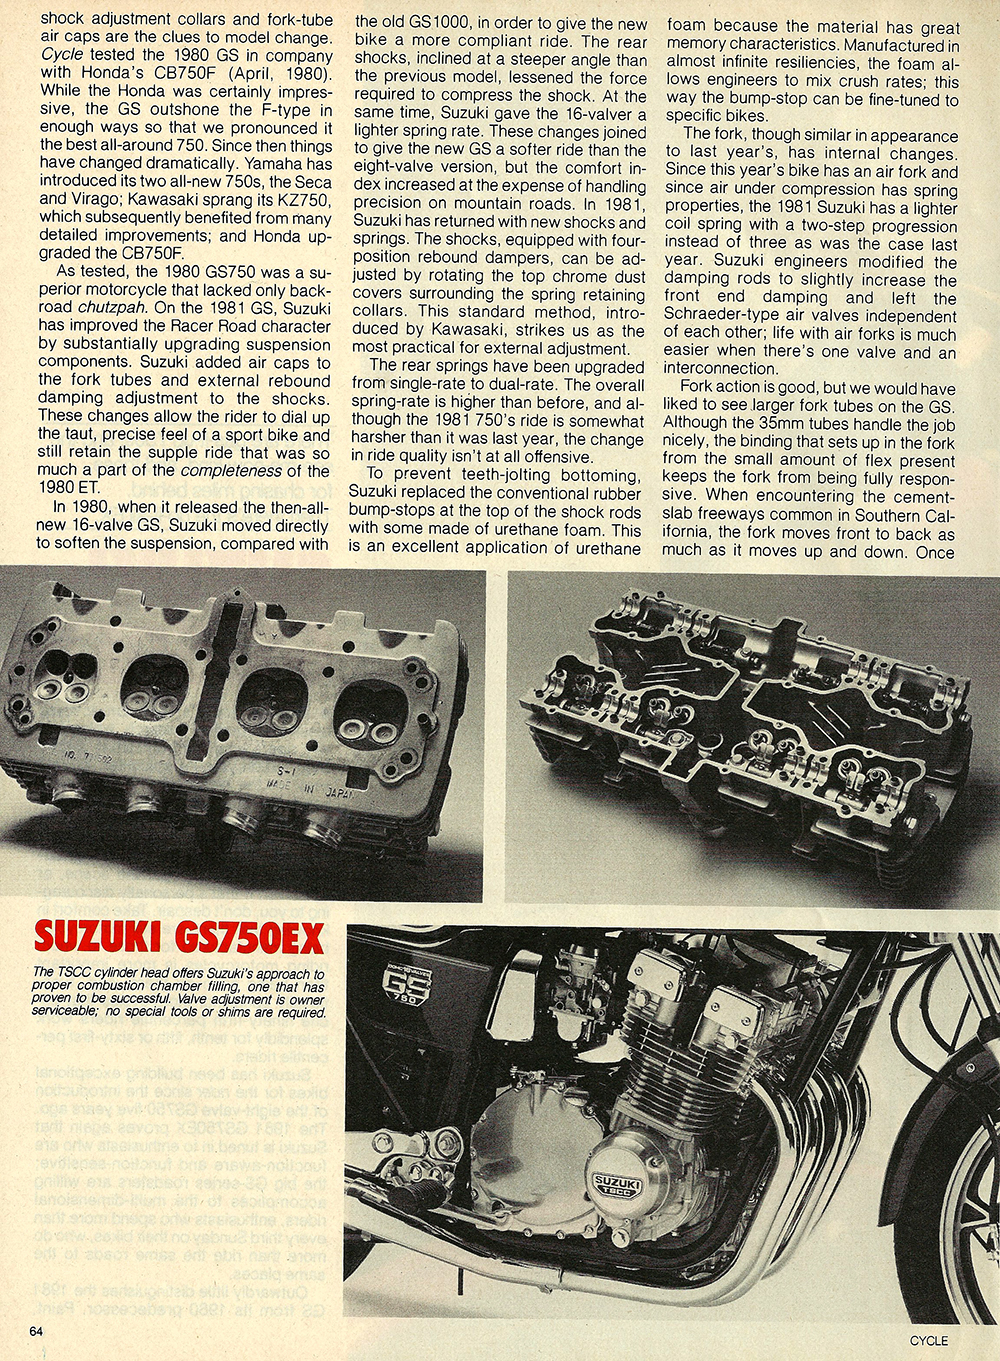 1981 Suzuki GS750 EX road test 03.jpg